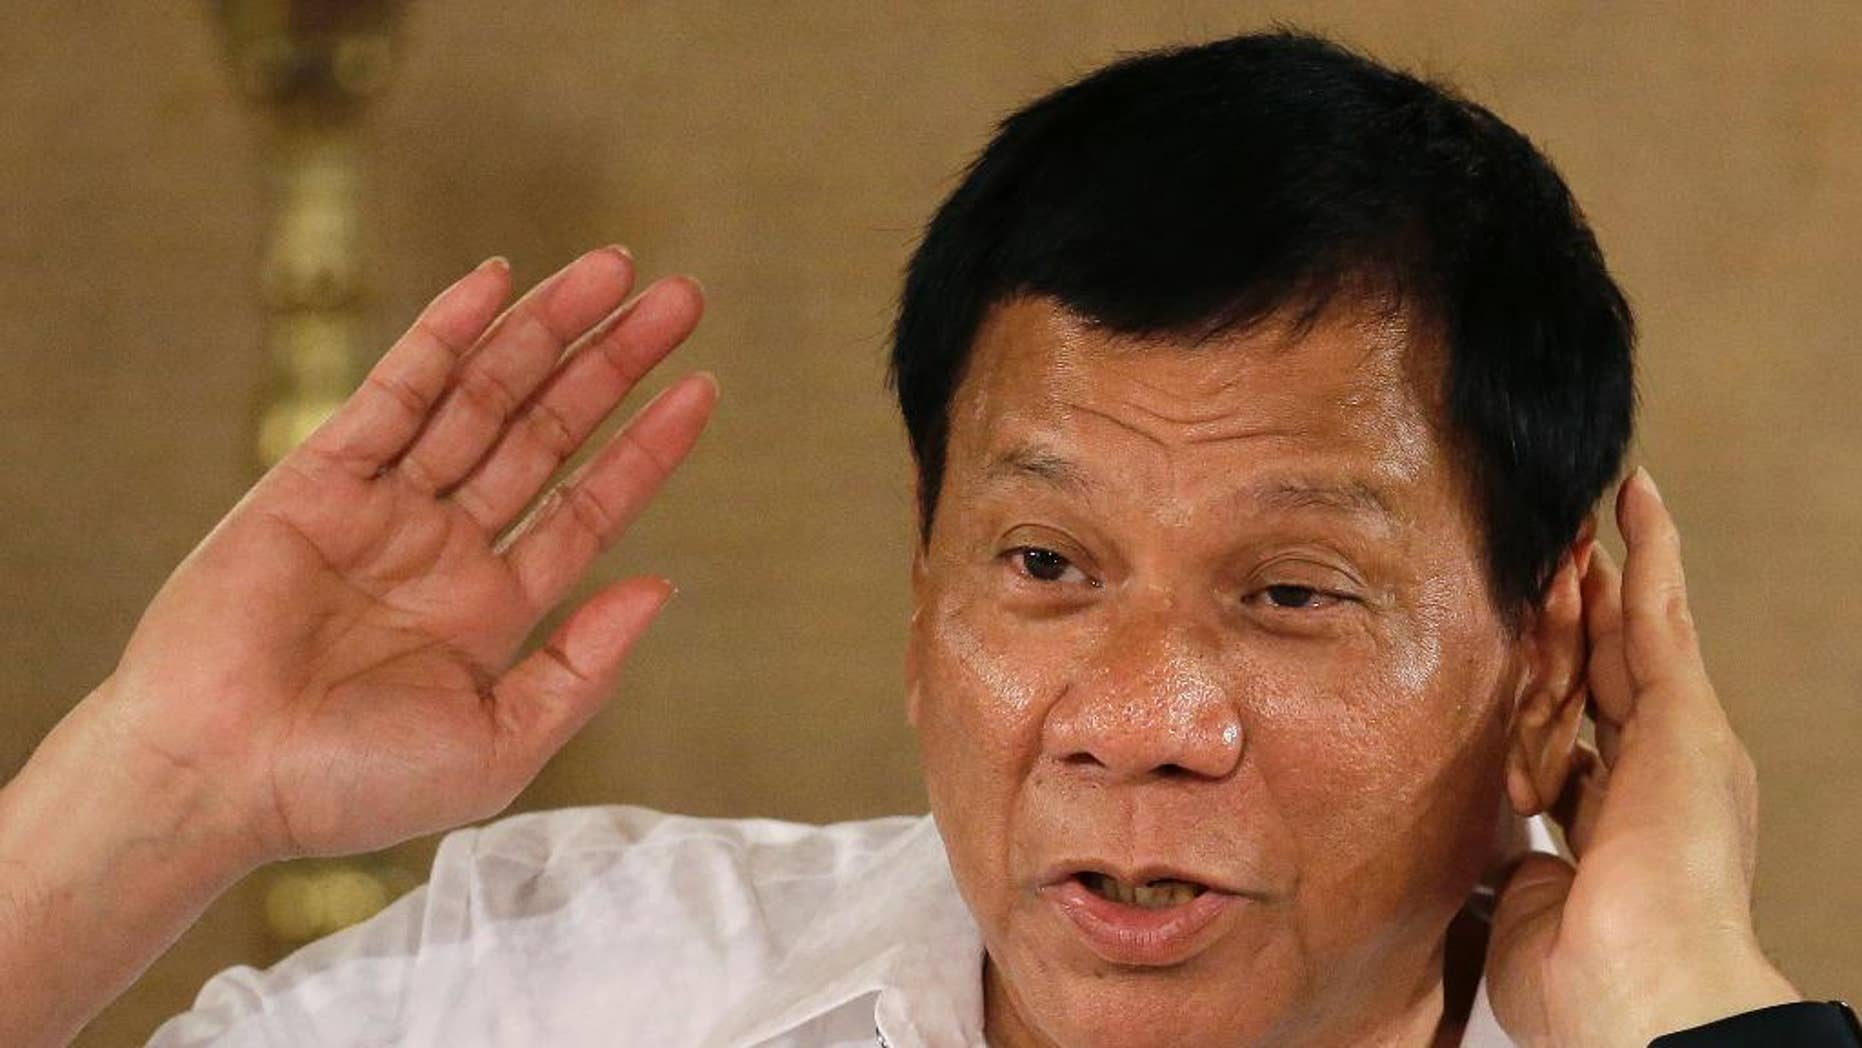 FILE - In this March 13, 2017 file photo, Philippine President Rodrigo Duterte gestures as he answers questions from reporters during a press conference at the Malacanang presidential palace in Manila, Philippines. A Philippine lawmaker filed an impeachment complaint against President Duterte on Thursday, March 16, 2017,  because of the thousands of deaths that have happened in his anti-drug crackdown and for alleged corruption, although the bid faces an uphill battle with Duterte's allies holding an overwhelming majority in Congress. (AP Photo/Aaron Favila, File)